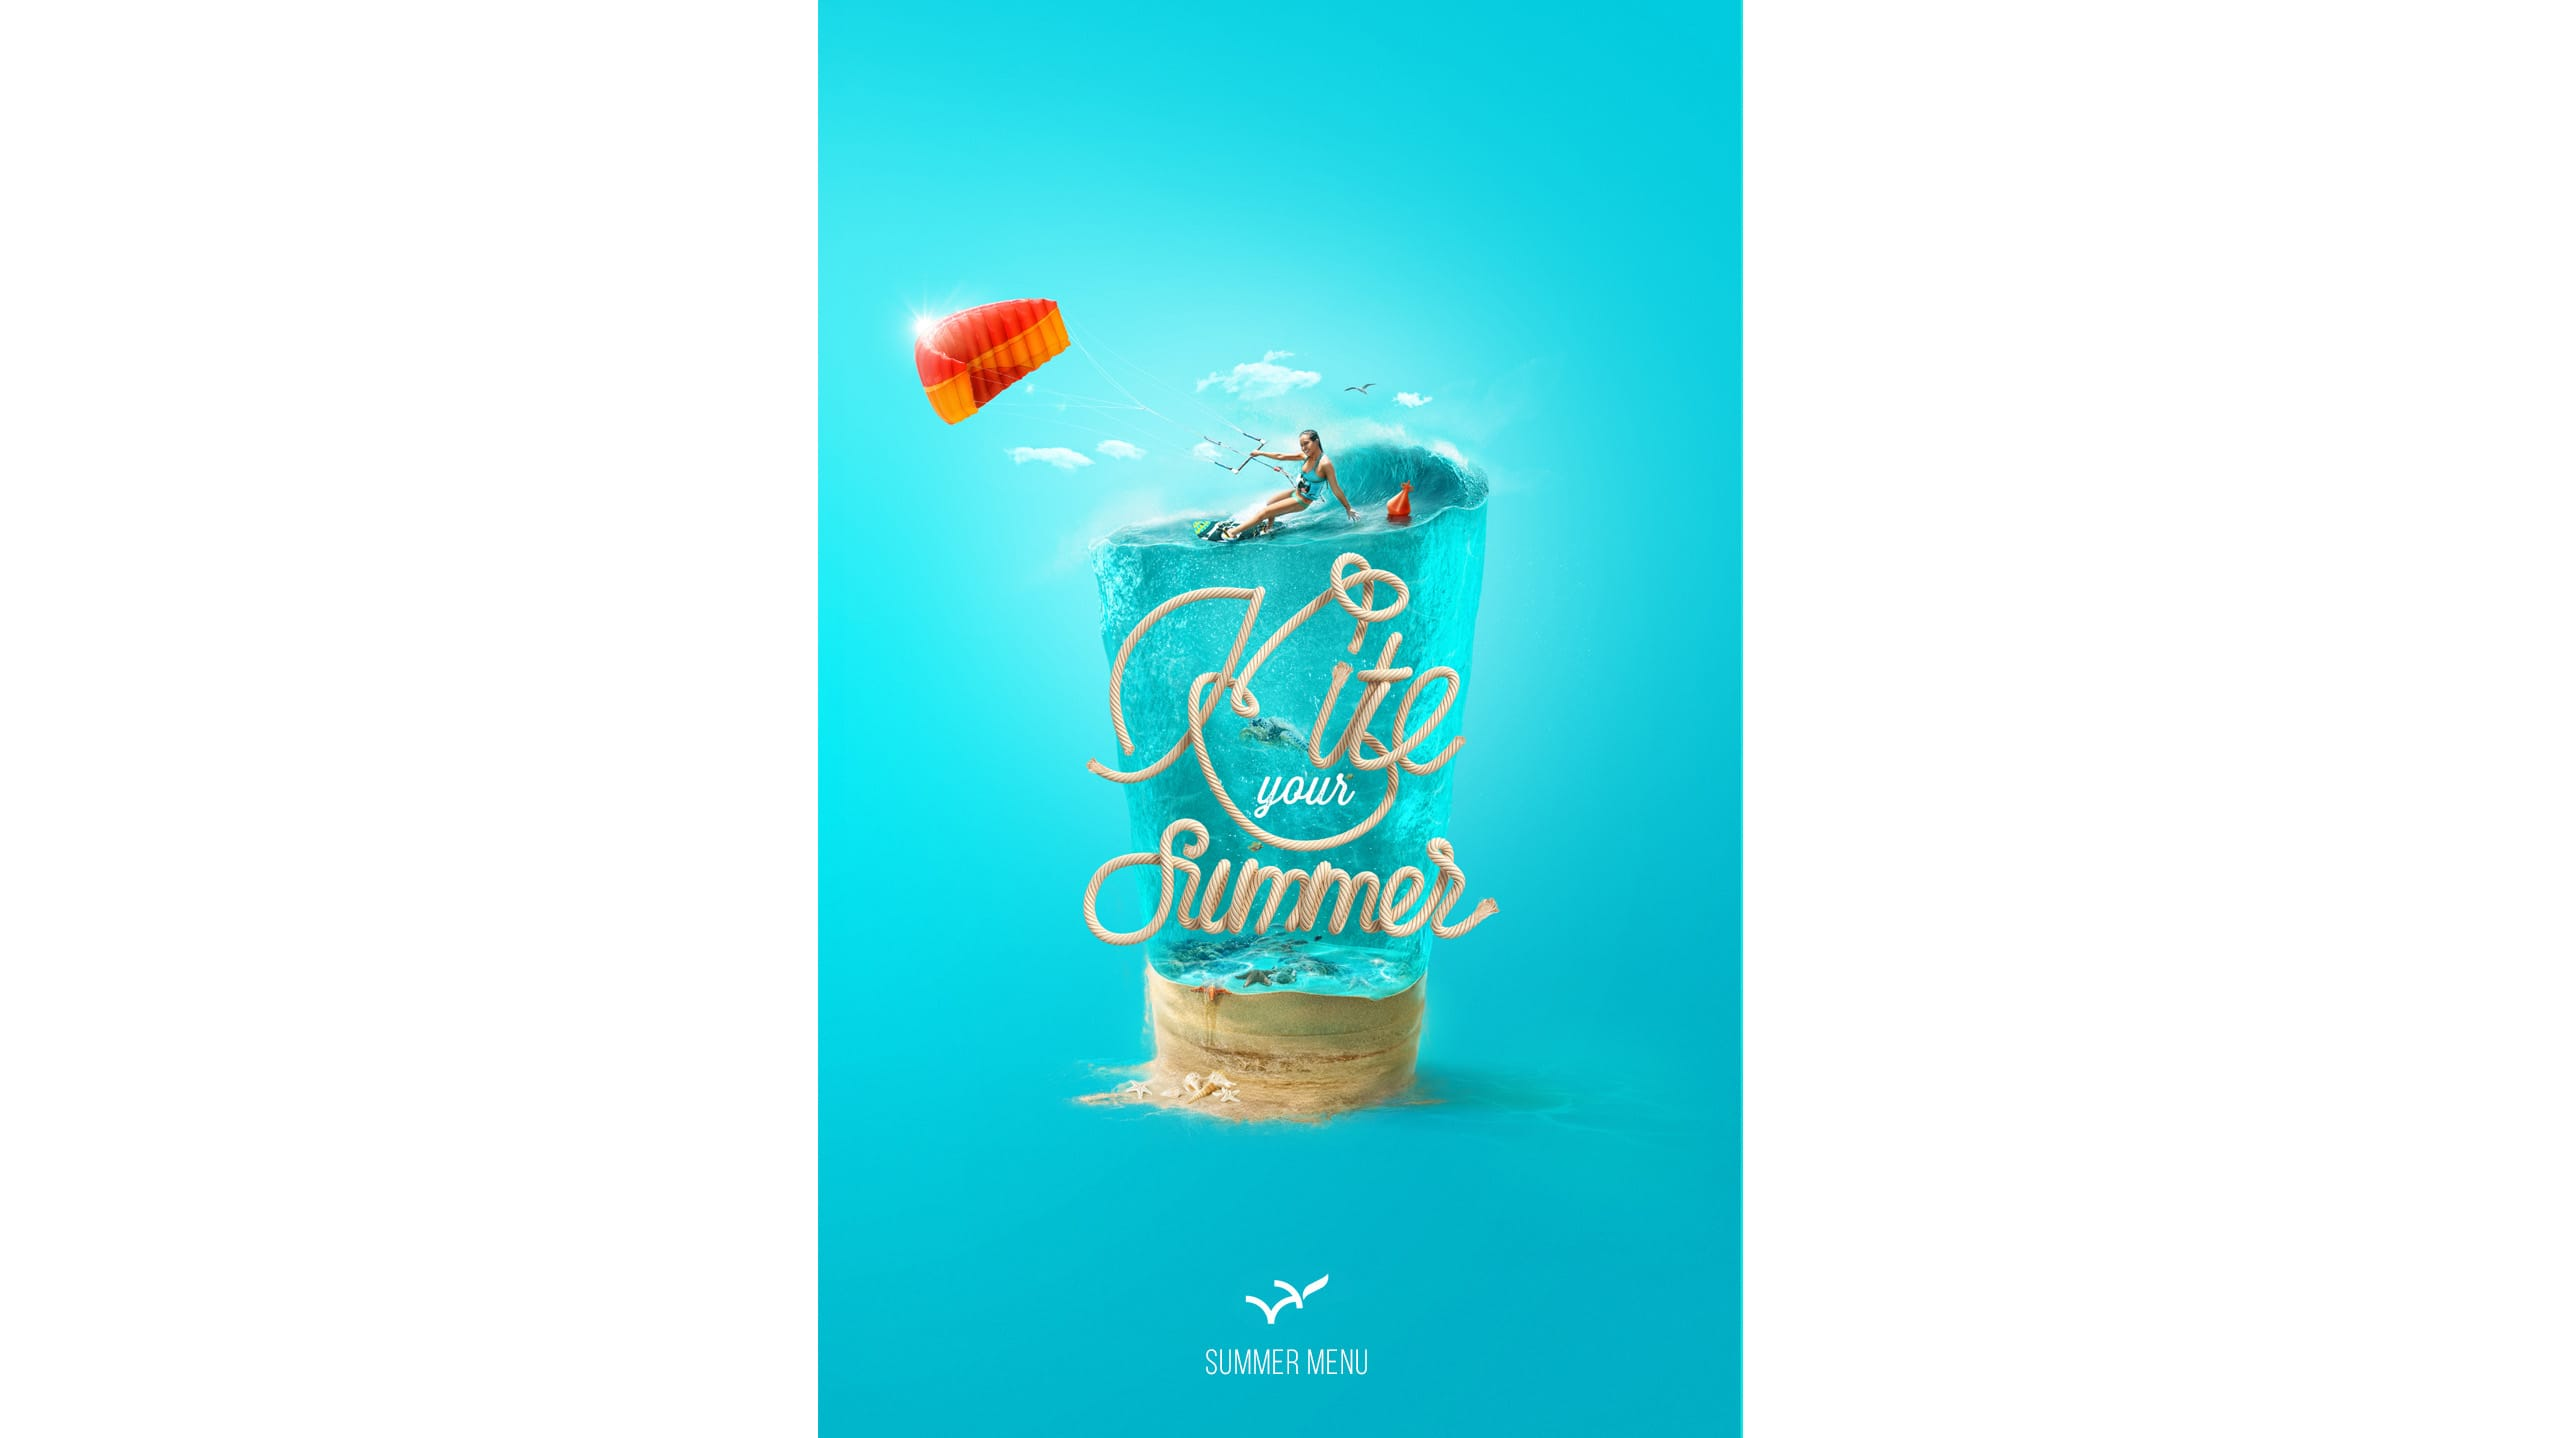 Постер Kite your summer от Feel Factory